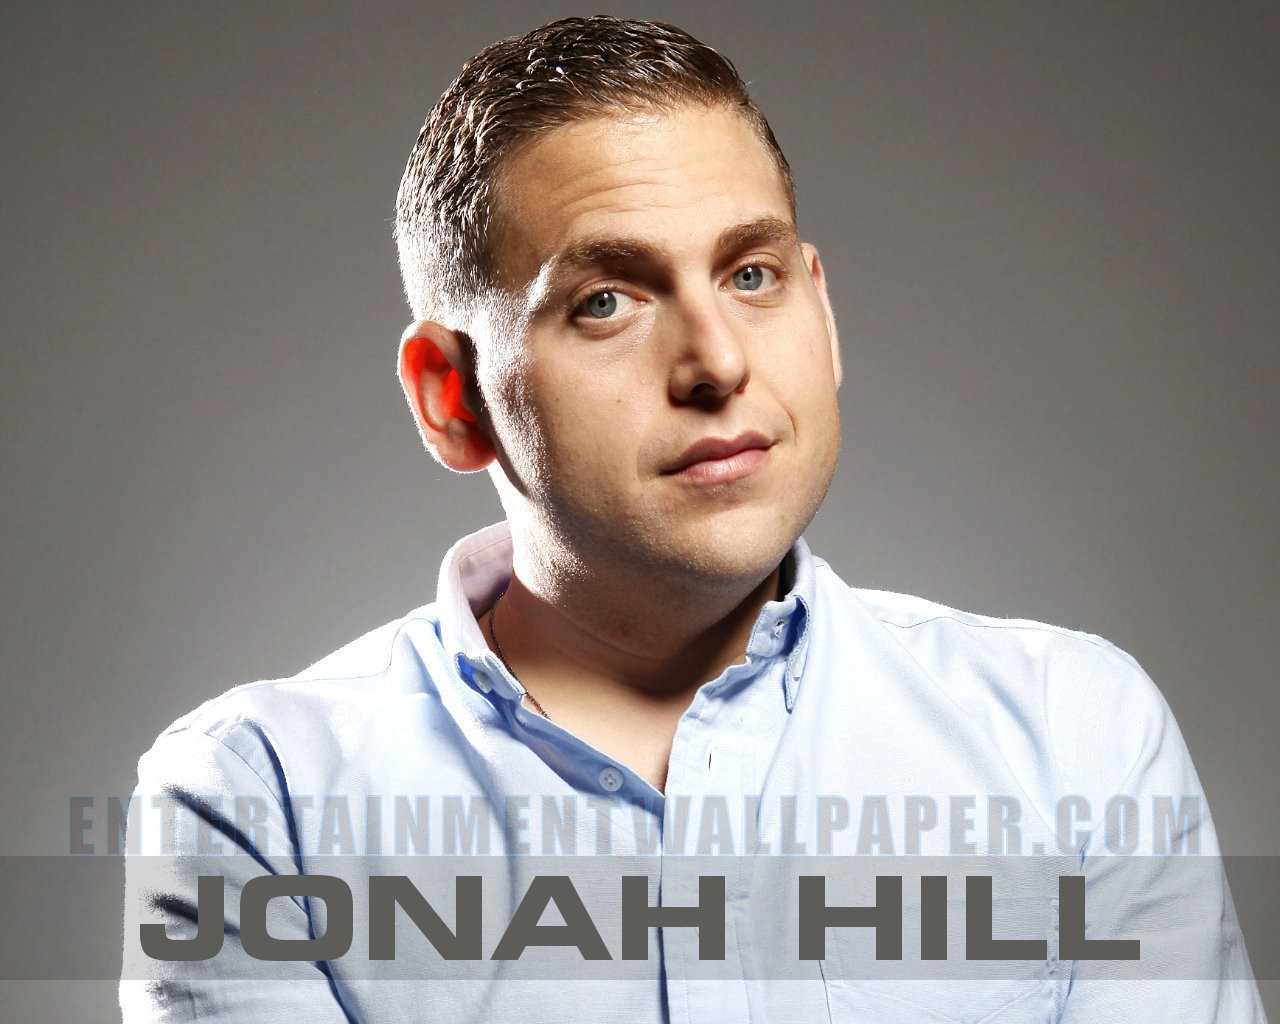 jonah hill wallpaper – 1280 x 1024 pixels – 201 kB